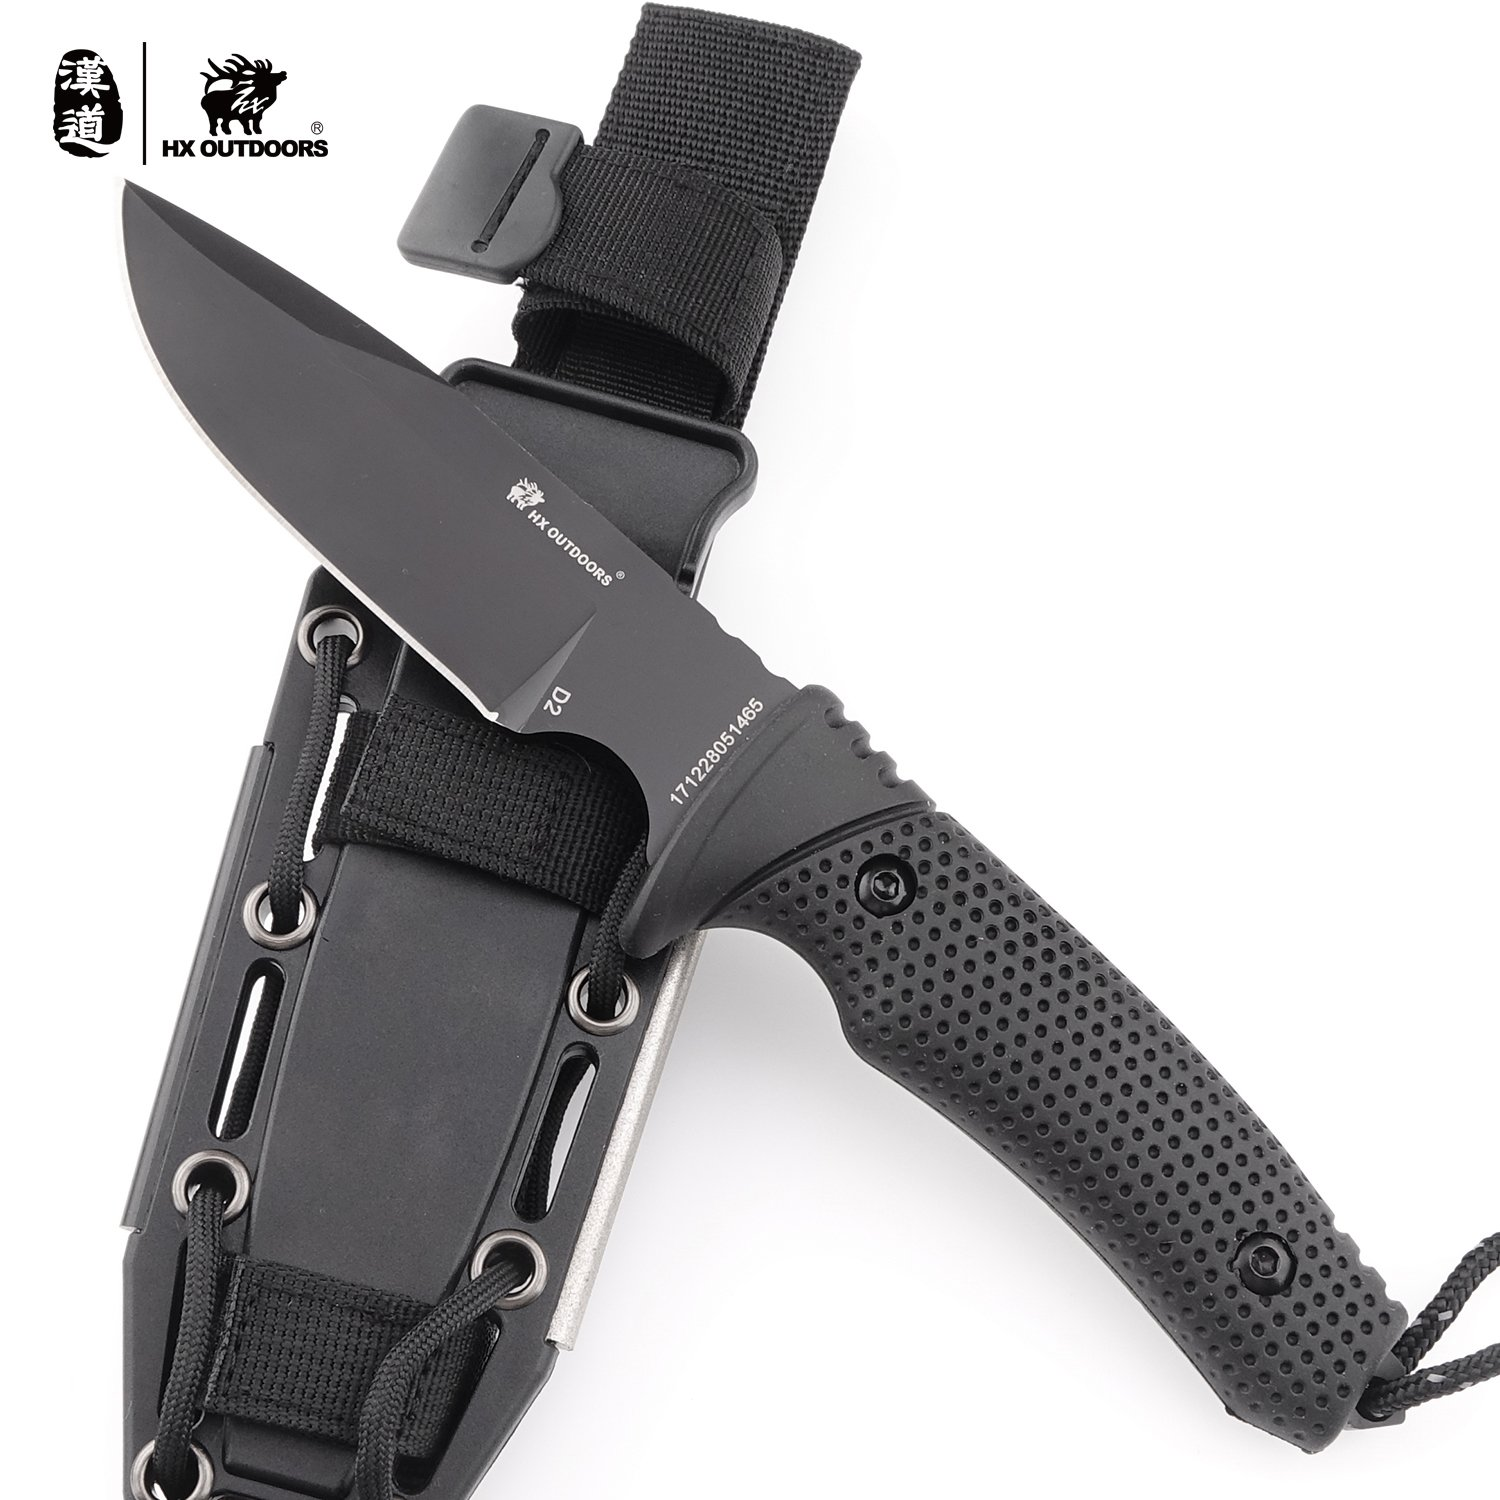 HX OUTDOORS Army Survival Tactical Knife Outdoor Tool Fixed-Blade Knives Camping Hiking Tools (Explorer)